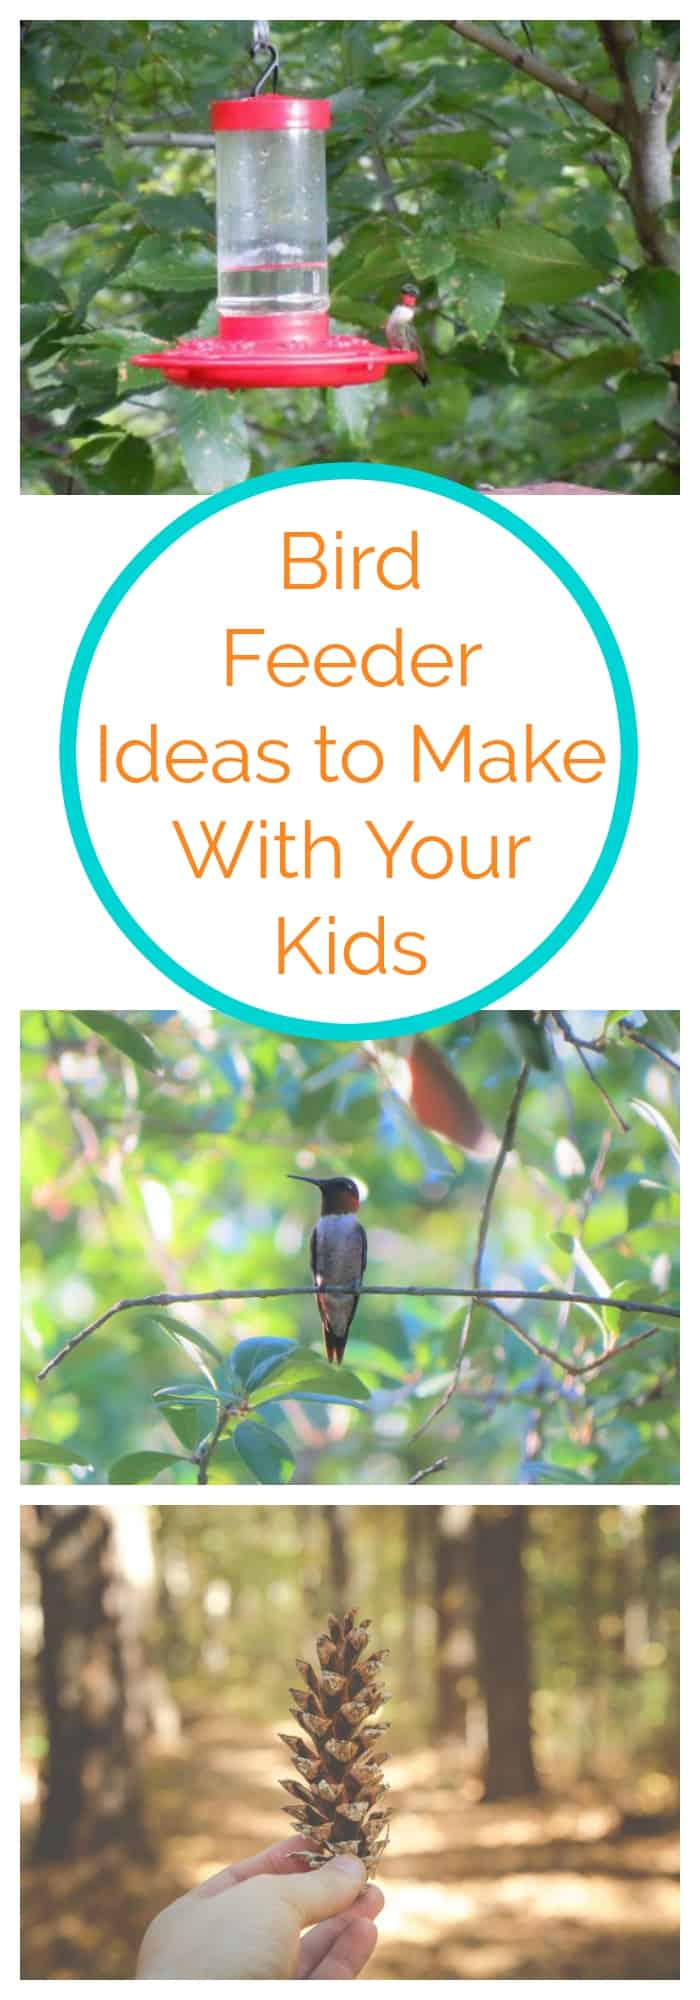 Bird Feeder Ideas to Make With Your Kids